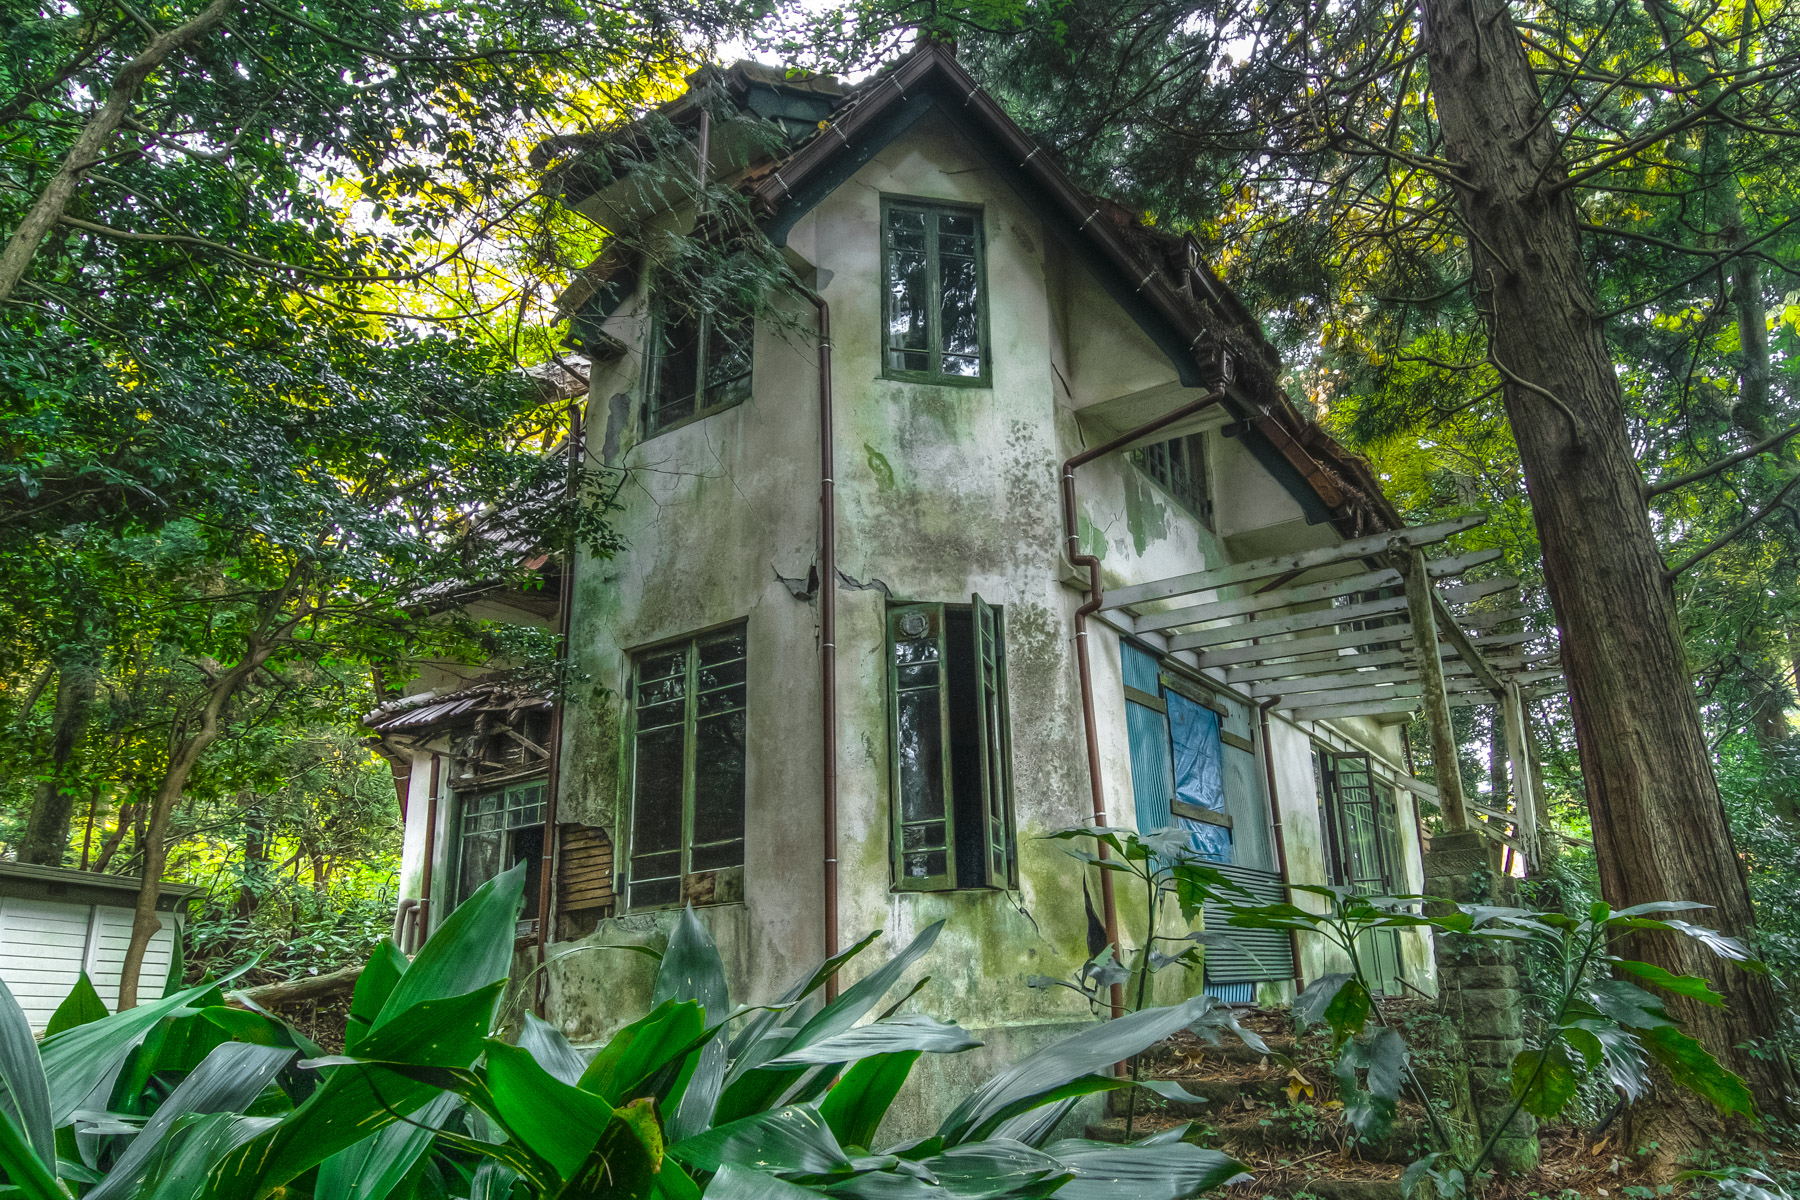 abandoned, haikyo, house, ruin, urban exploration, urbex